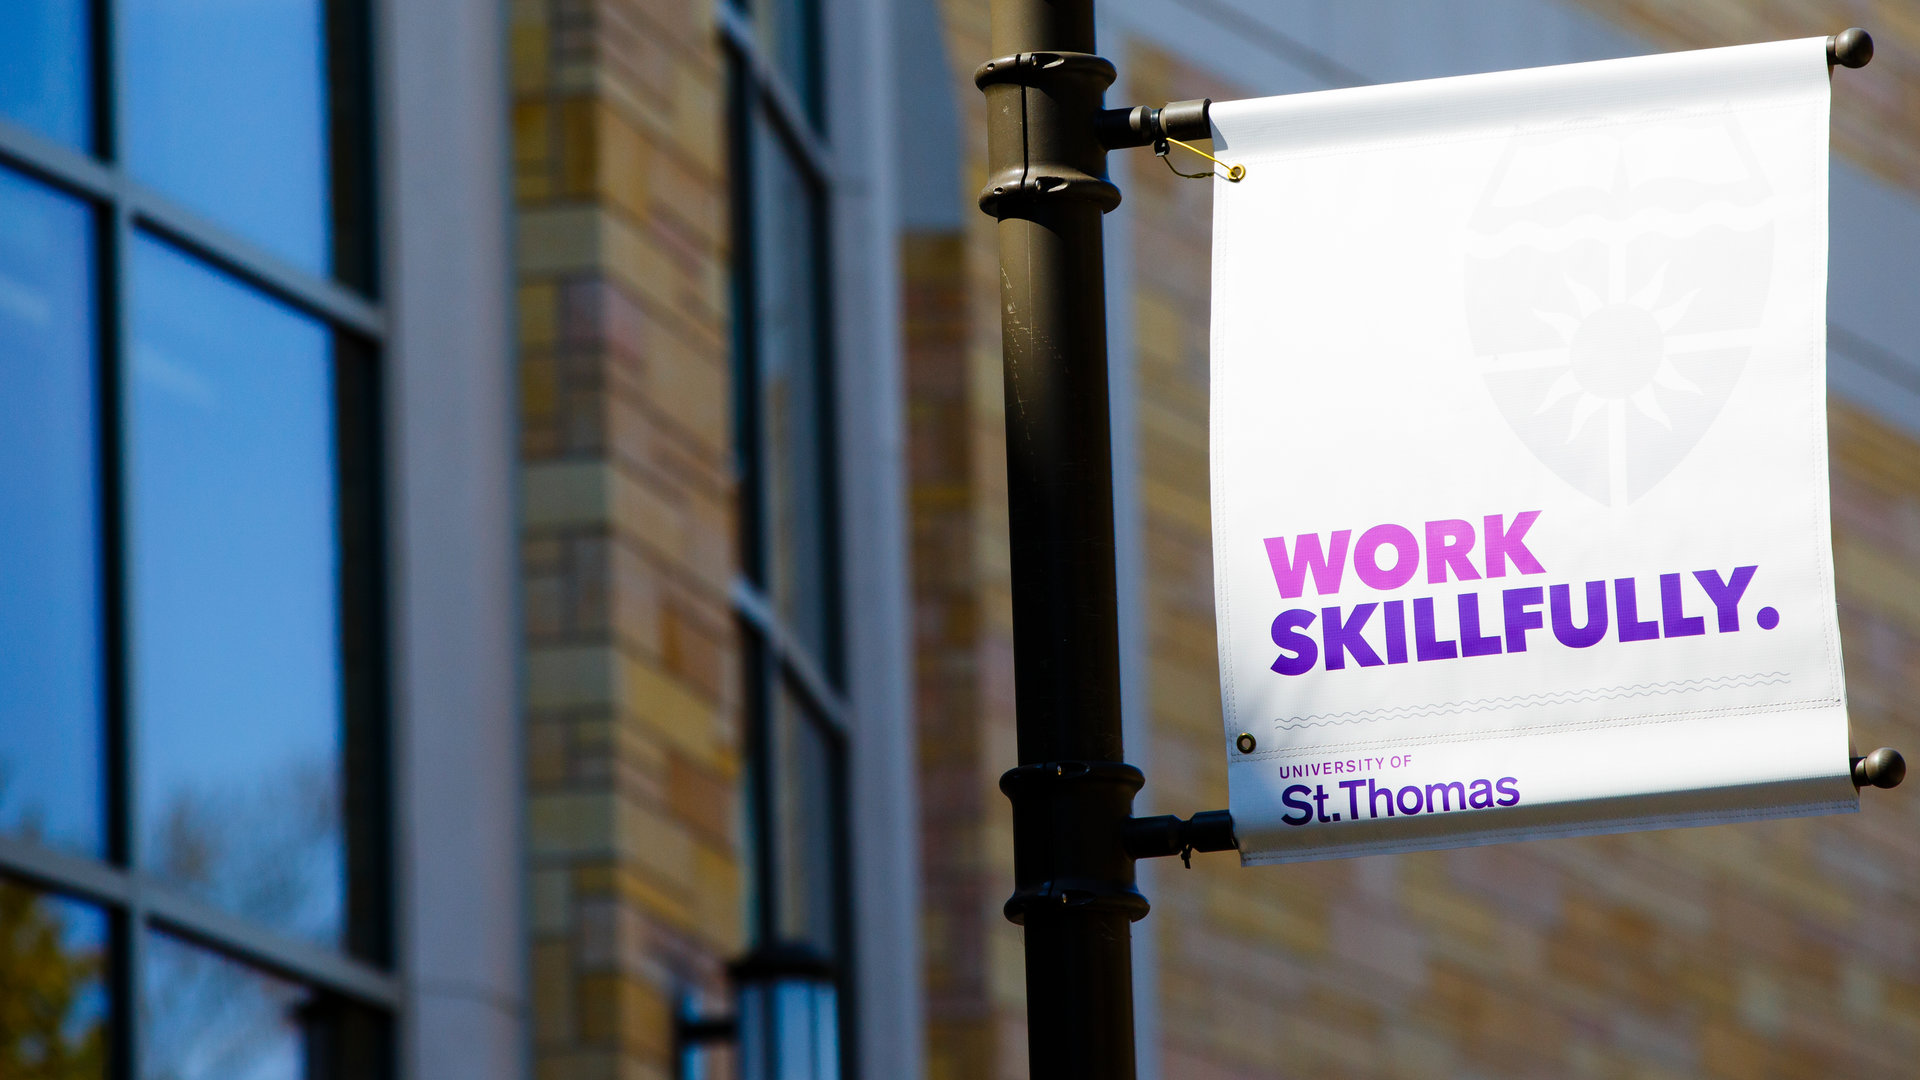 University of St. Thomas branded banner with text on it that says the following Work Skillfully.